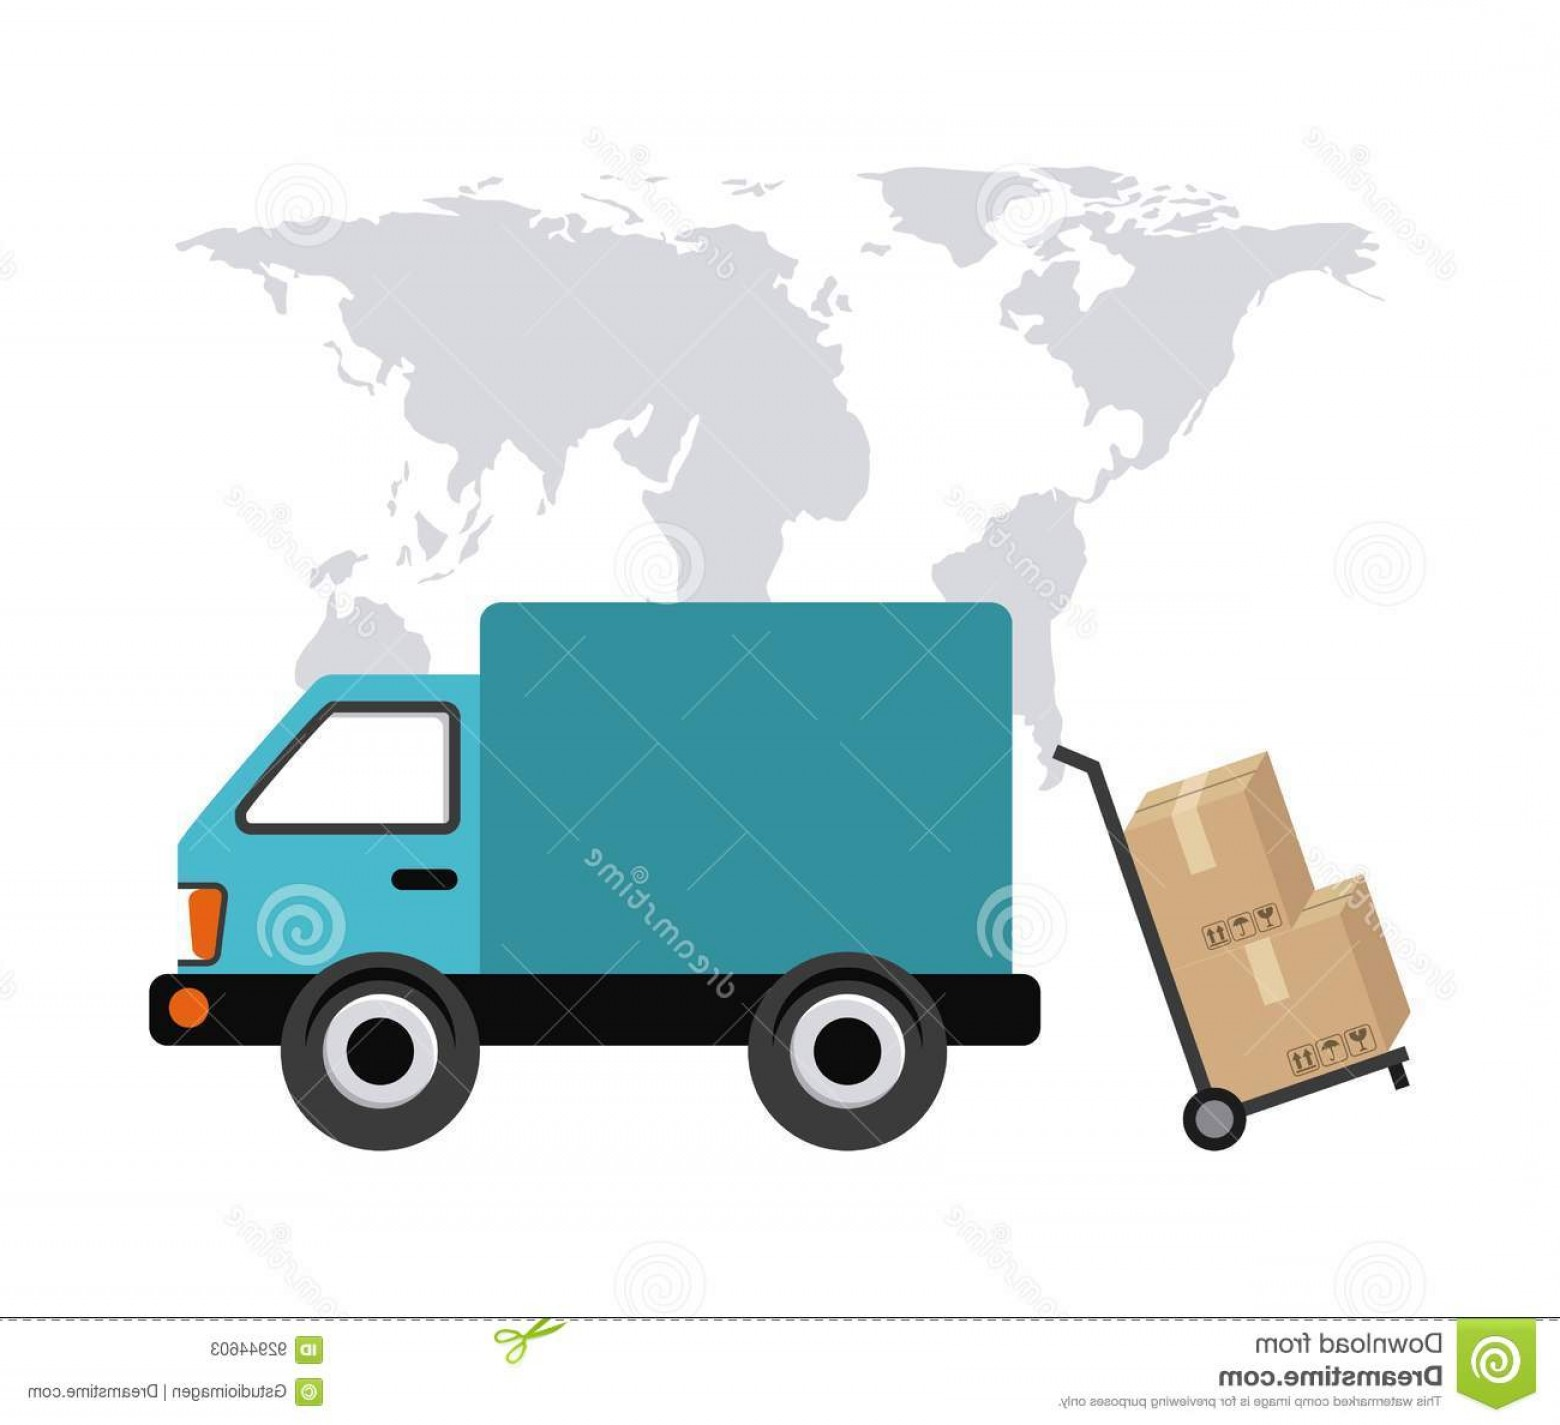 Packages On A Truck Vector: Stock Illustration Map Truck Package Icon Delivery Shipping Design Vector Concept Represented Colorfull Flat Illustration Image